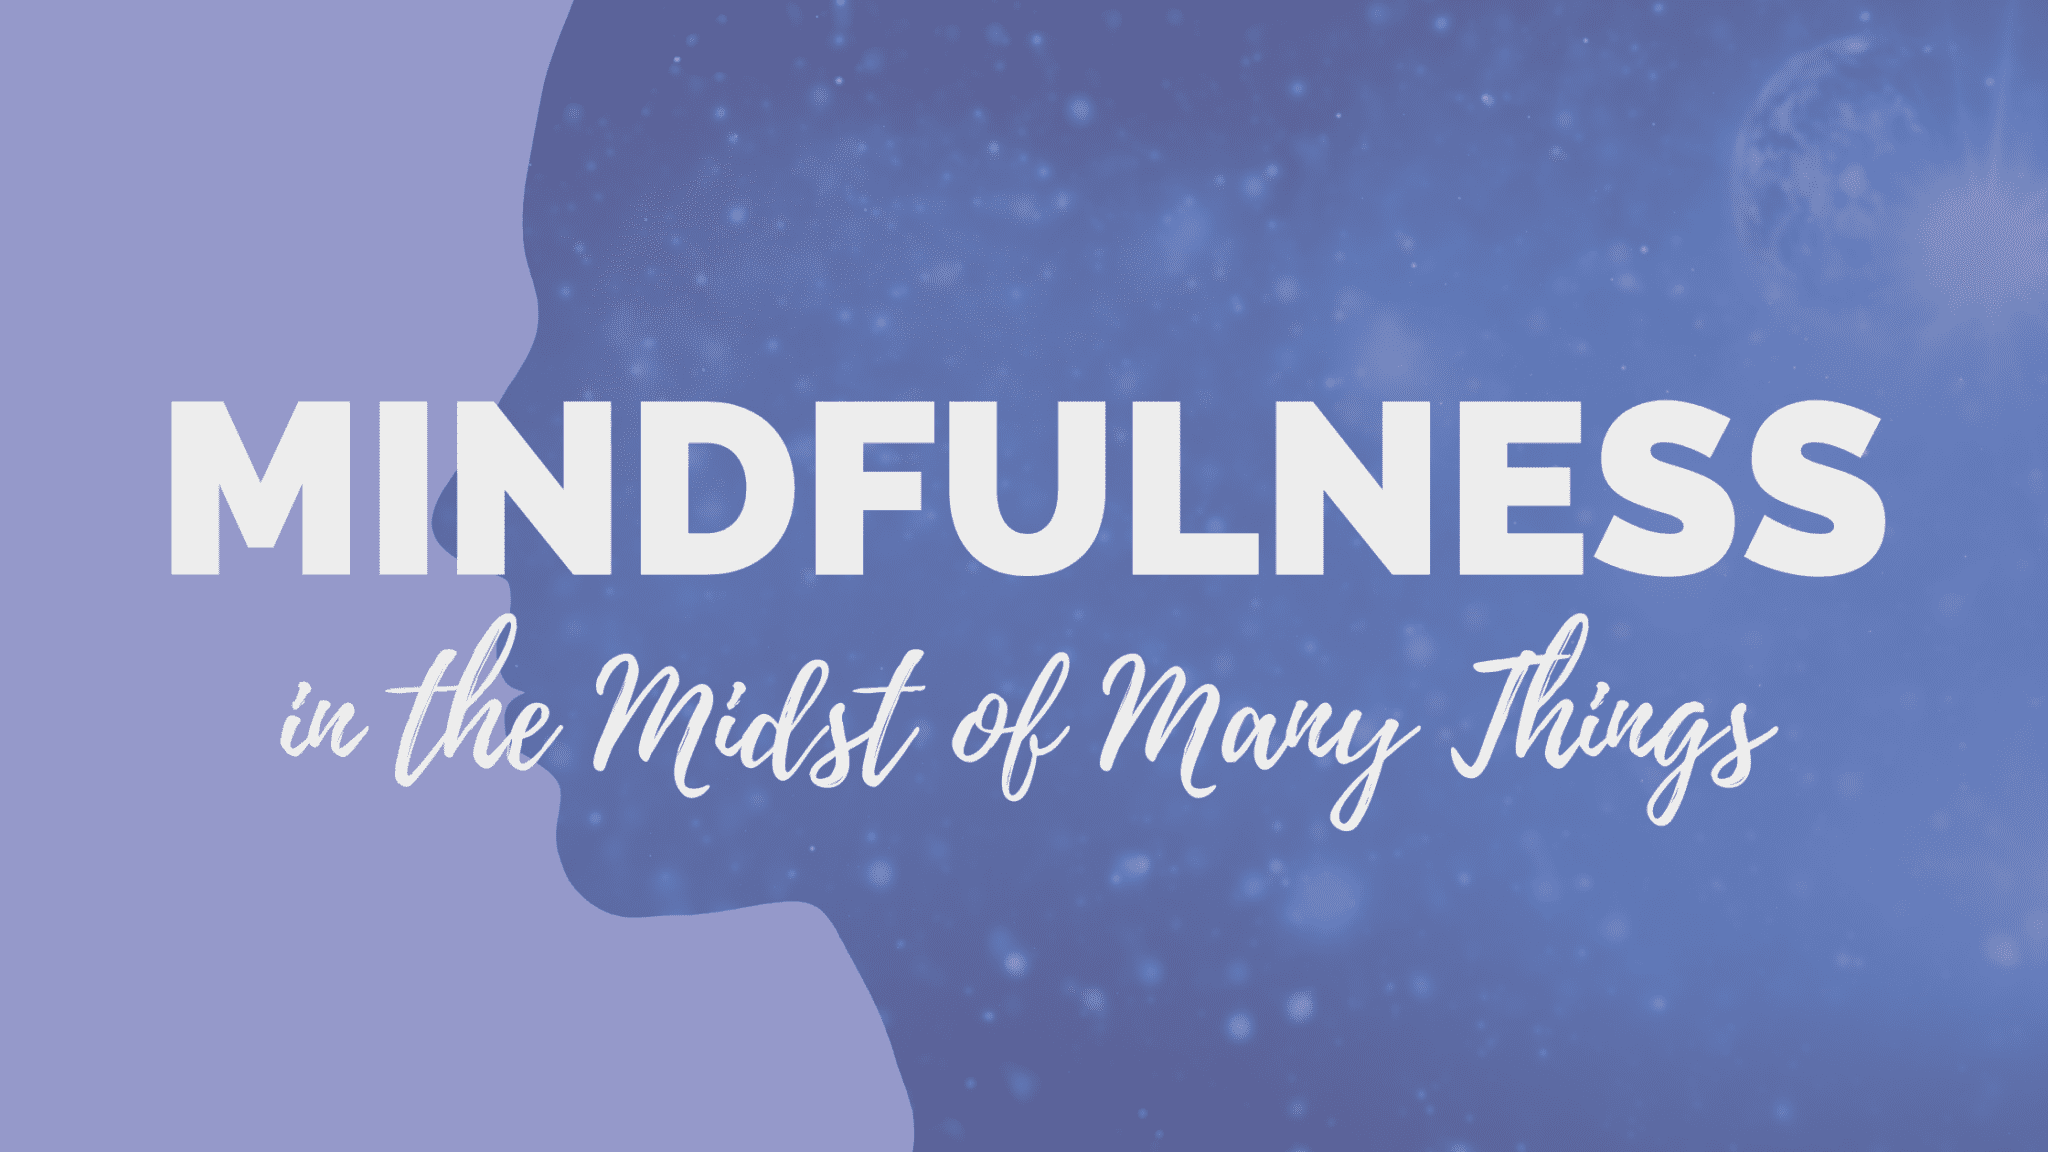 Mindfulness in the Midst of Many Things